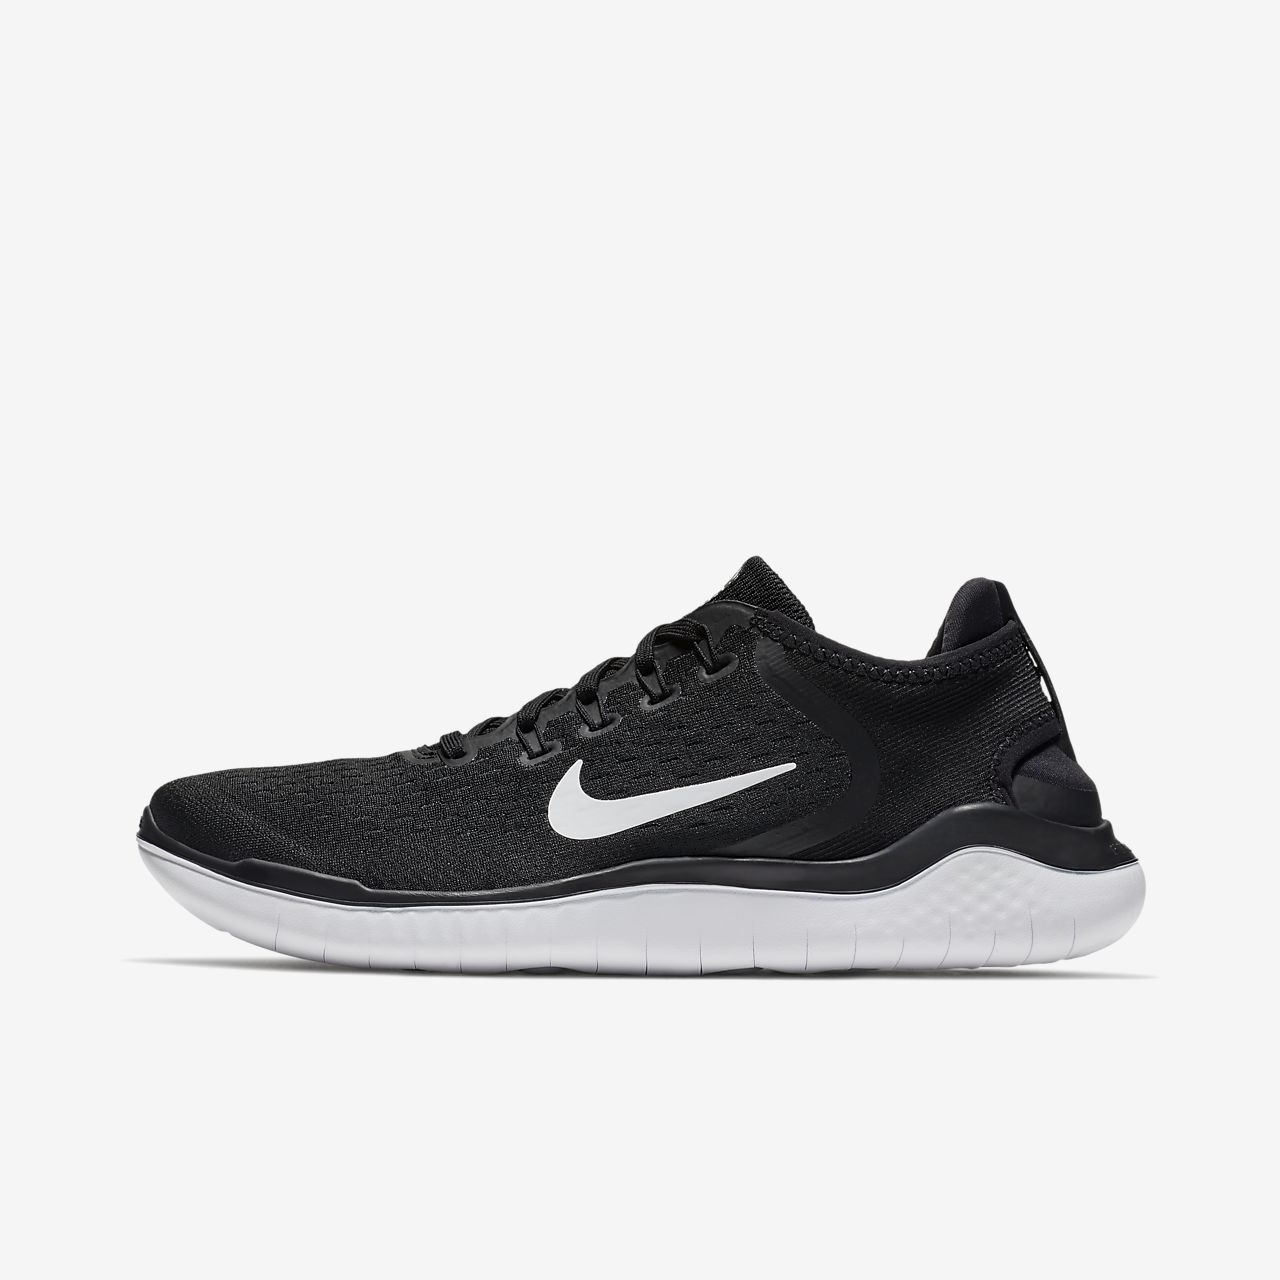 c616208e424c4 Nike Free RN 2018 Men s Running Shoe. Nike.com IN